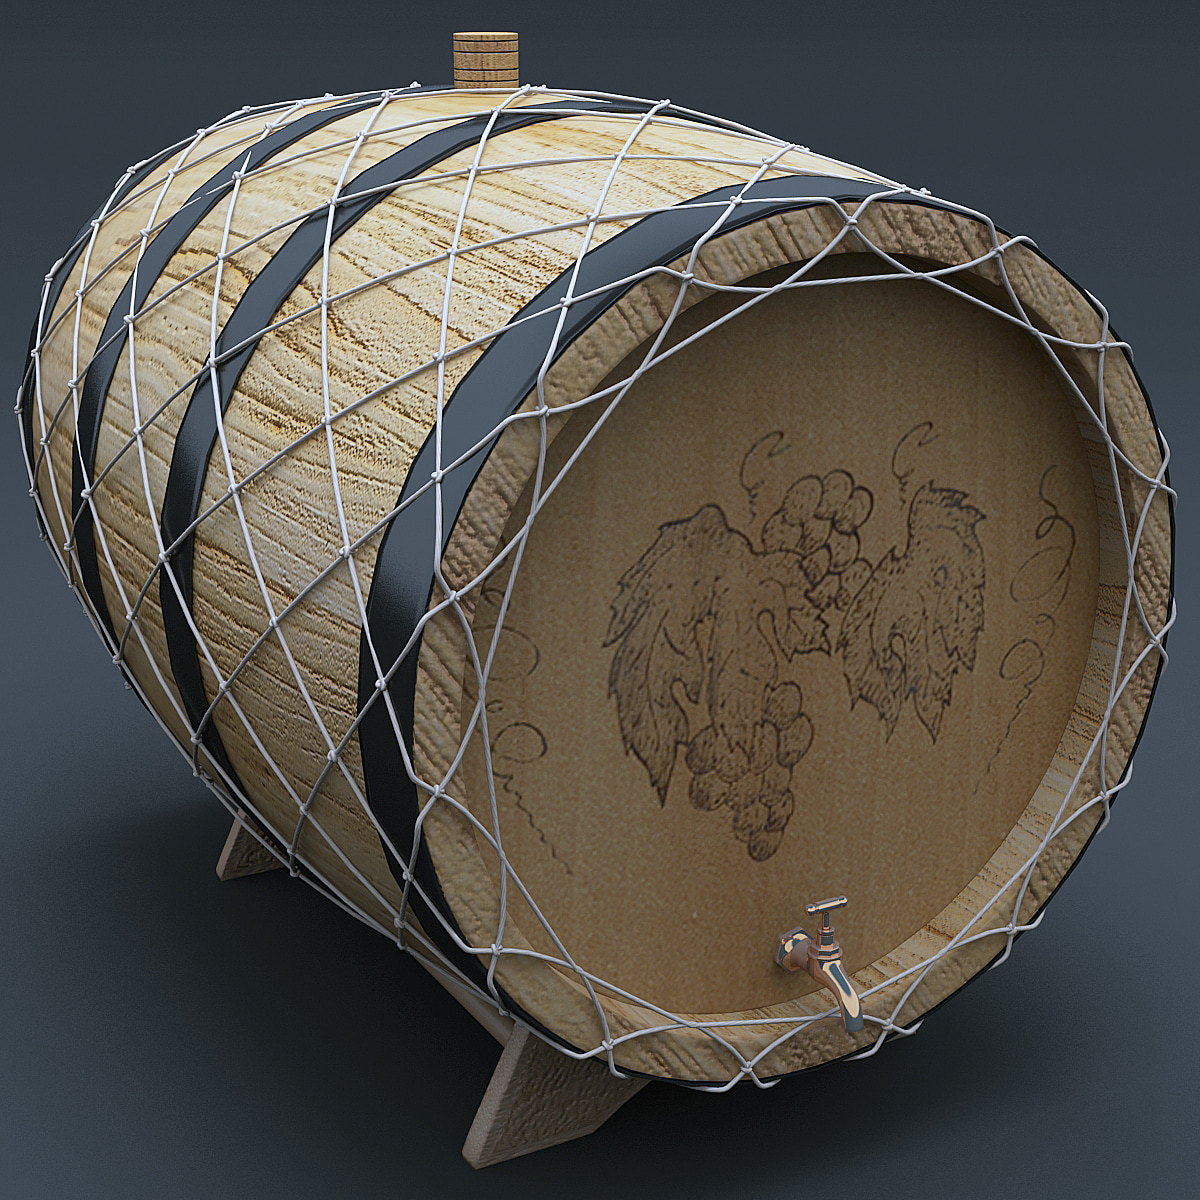 Wine_Barrel_V3_Vray_1.jpg